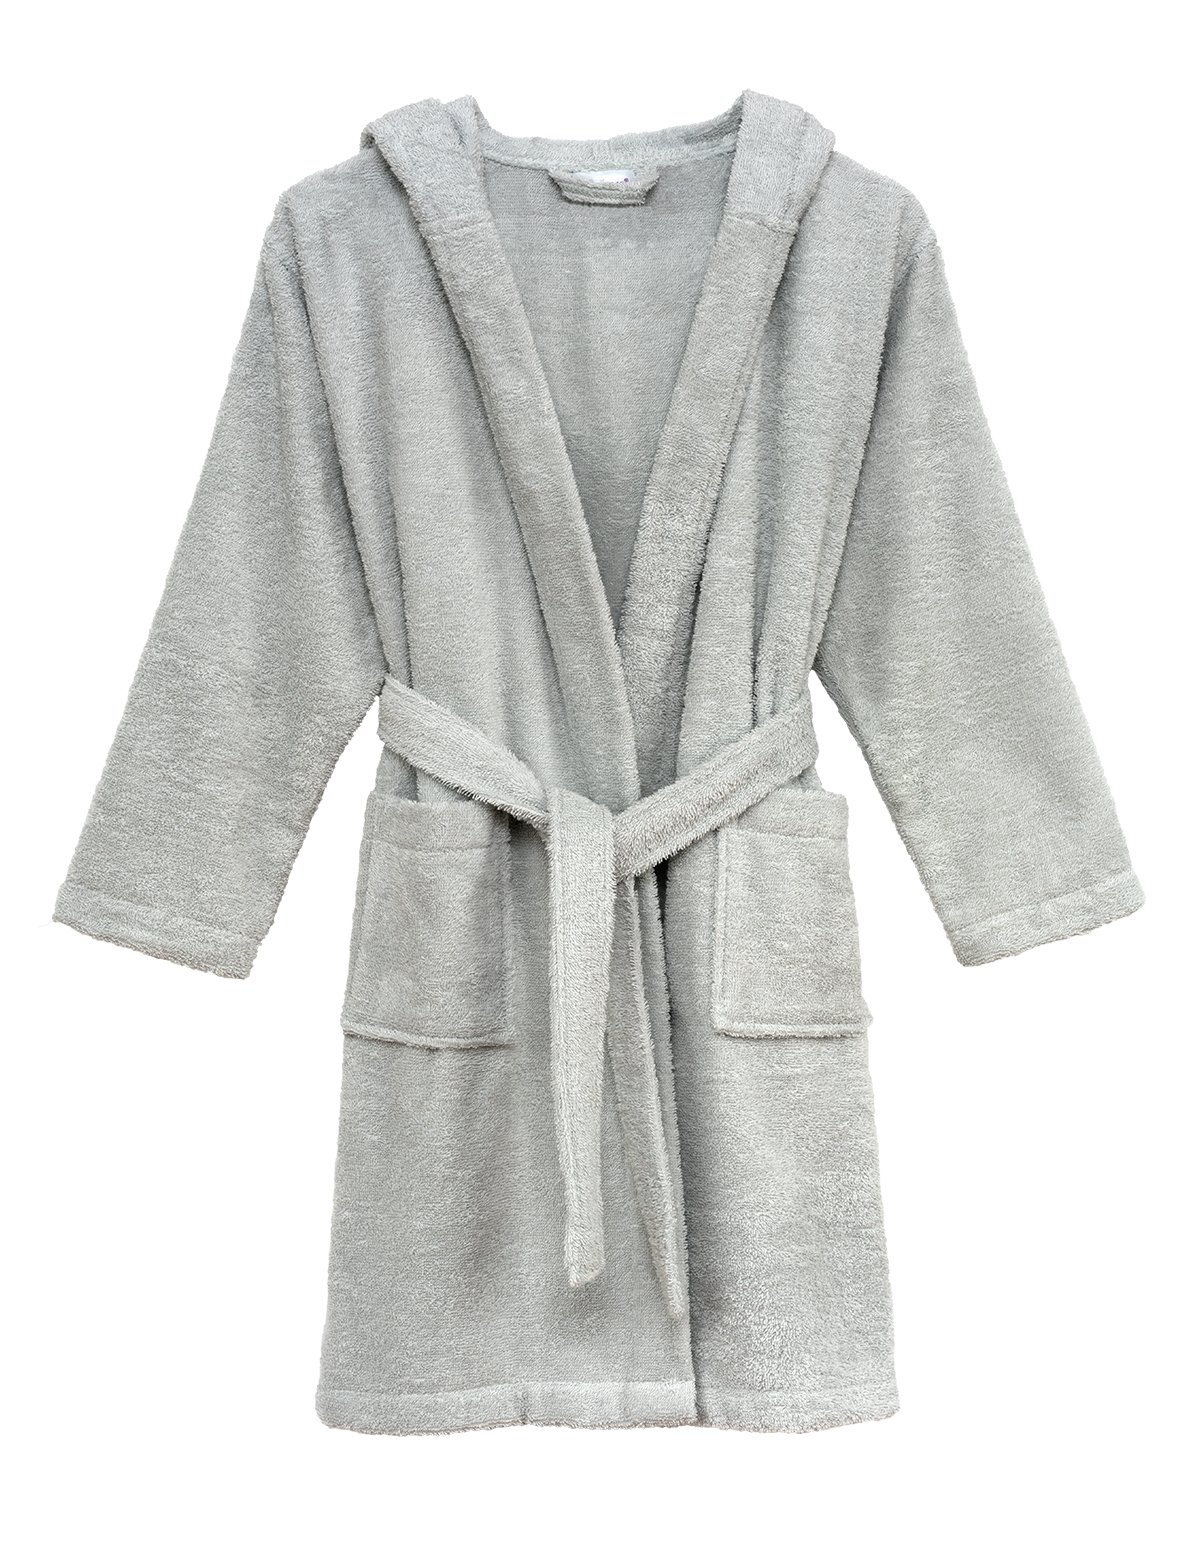 TowelSelections Little Girls' Robe, Kids Hooded Cotton Terry Bathrobe Cover-up Size 4 Glacier Gray